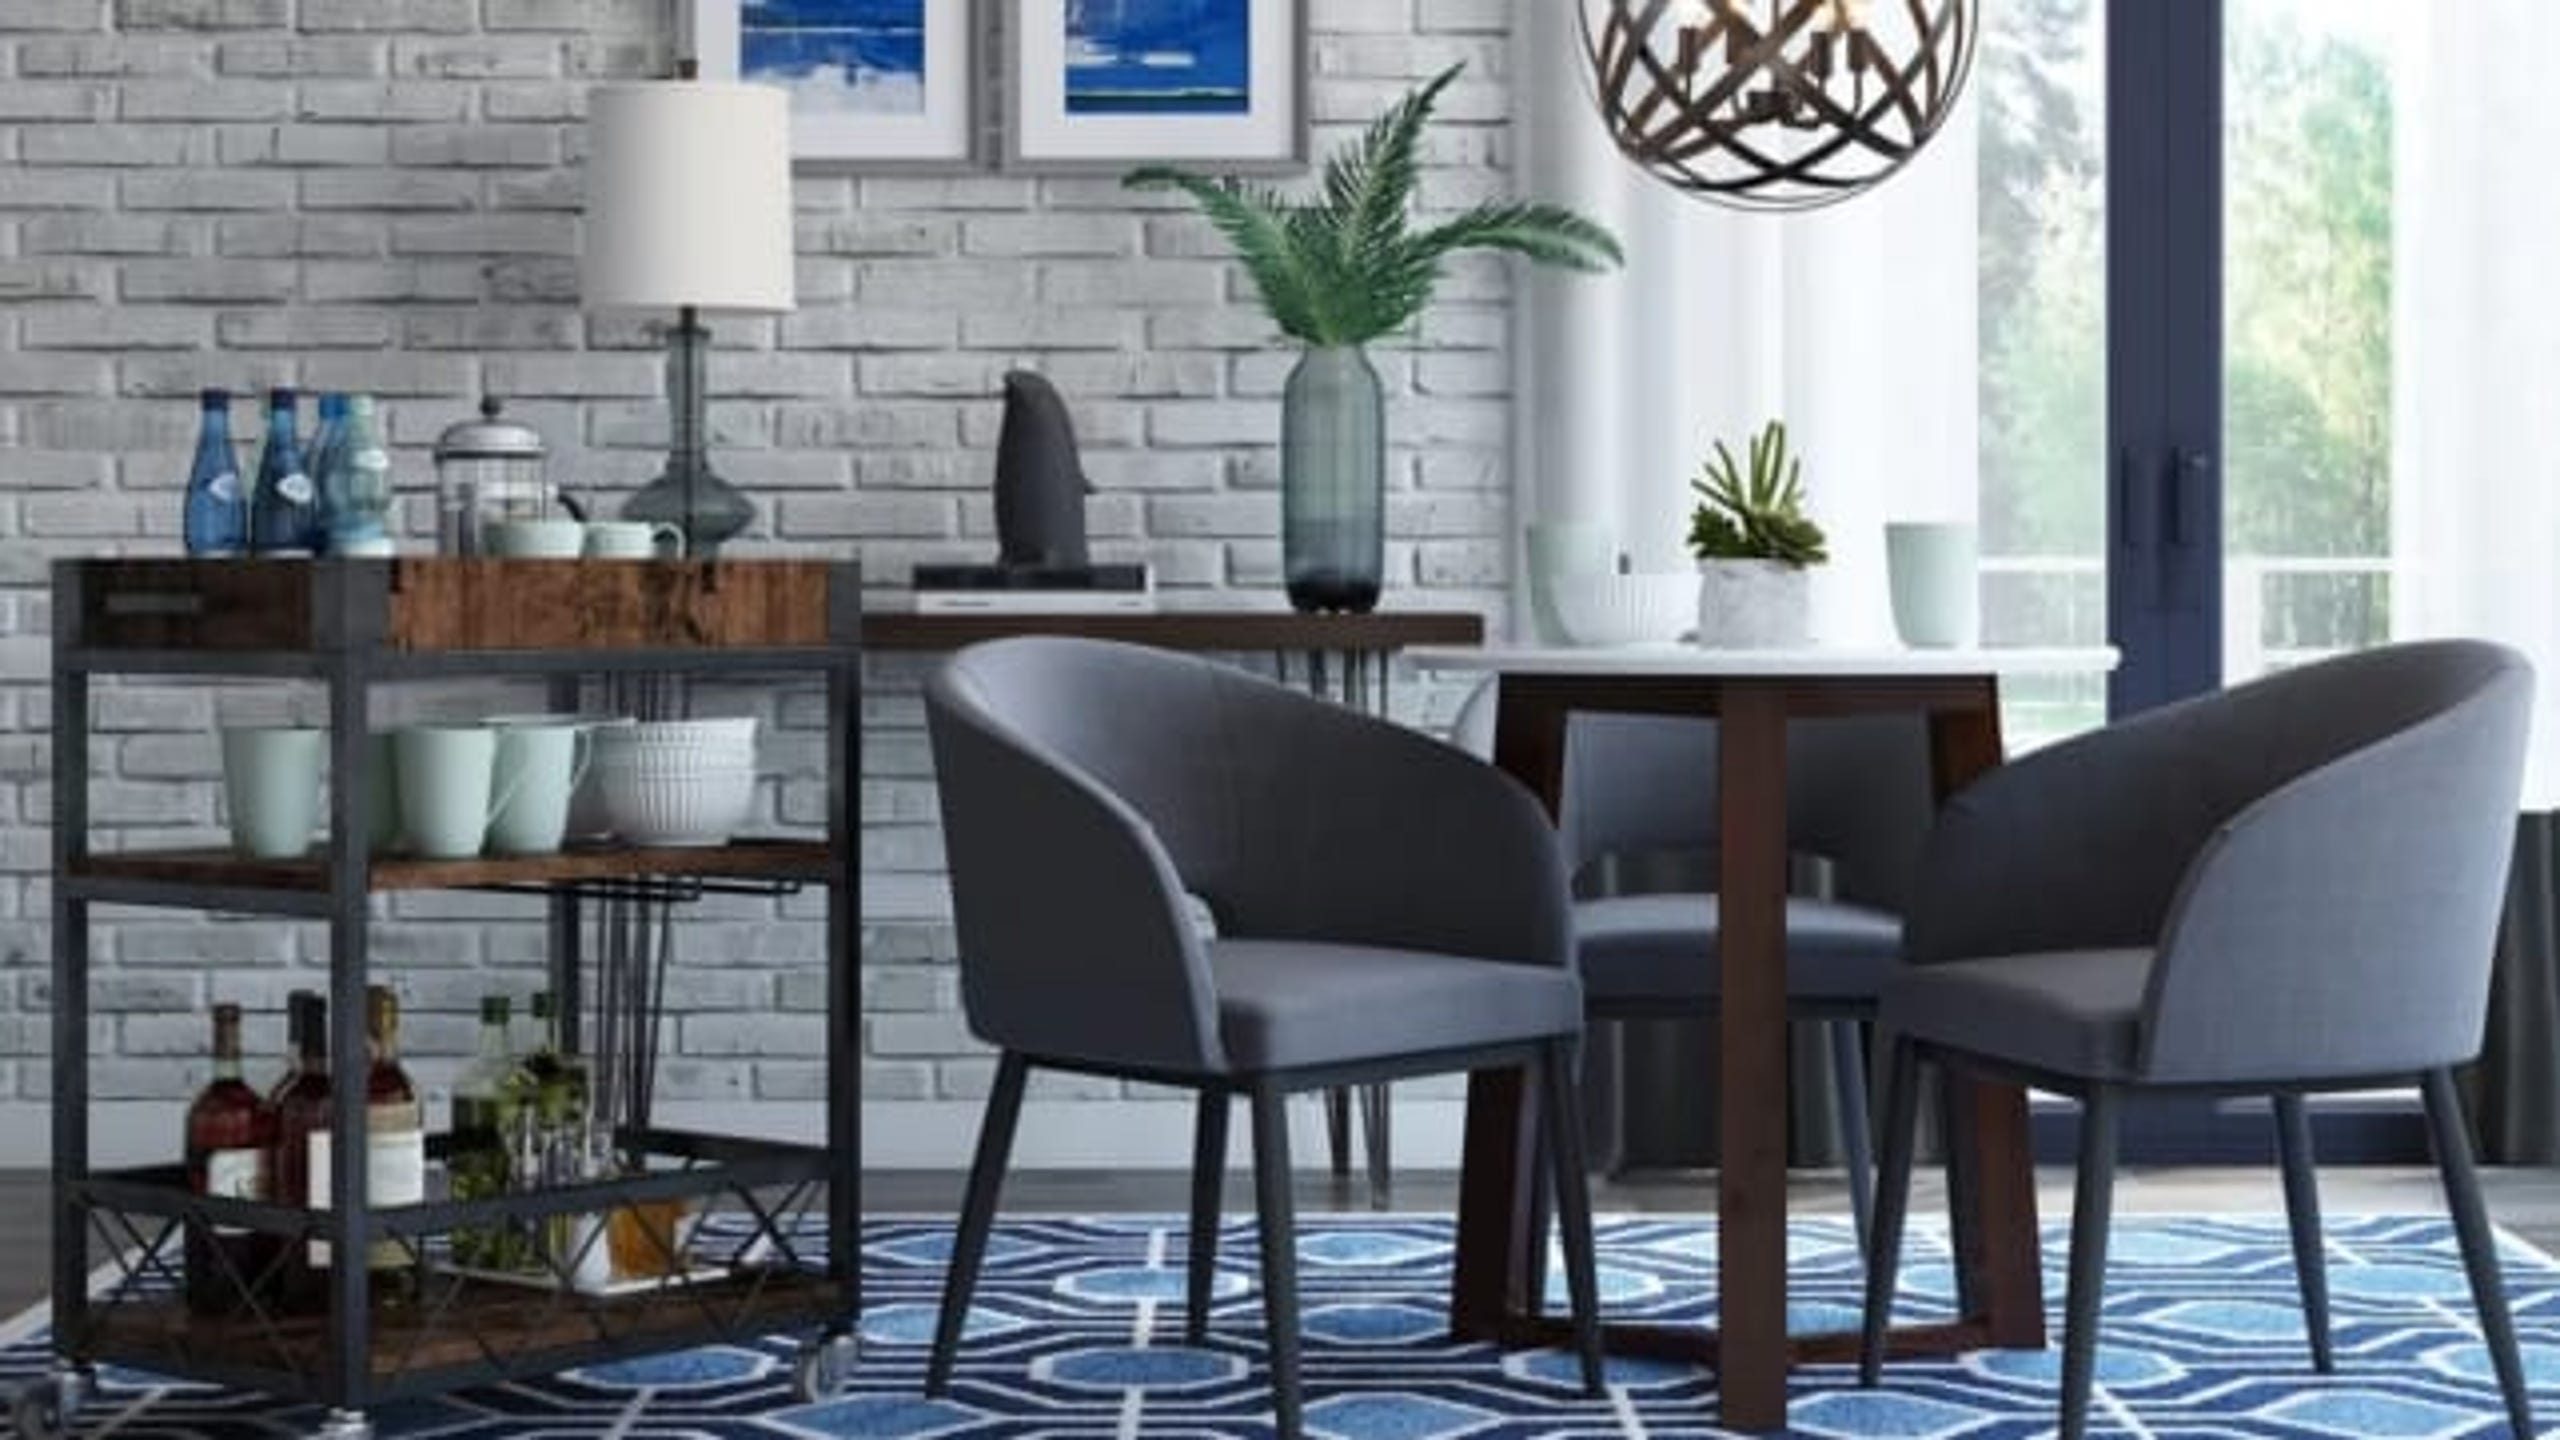 20 Best Places To Buy Furniture Online